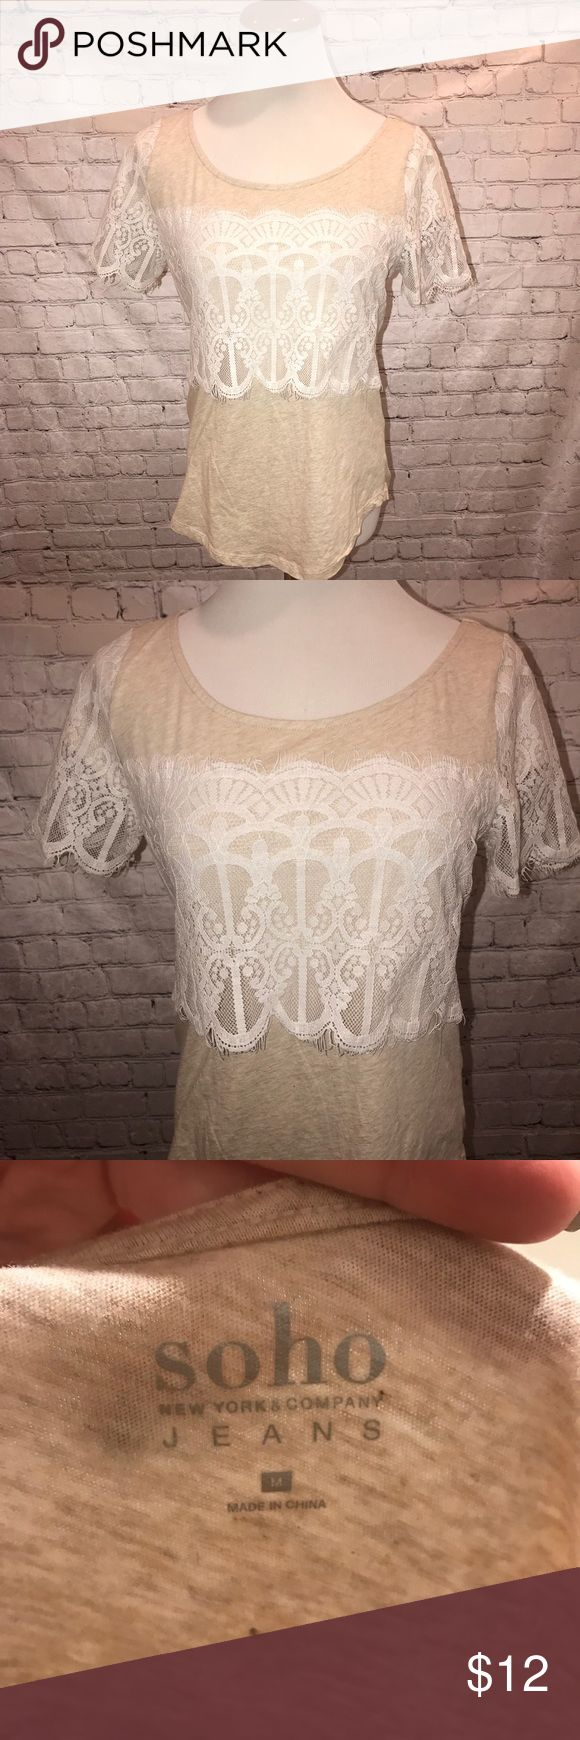 New York and company top NWOT beige short sleeve top. Lace accents on front n sleeve. Size medium but would fit lg also. New York & Company Tops Blouses